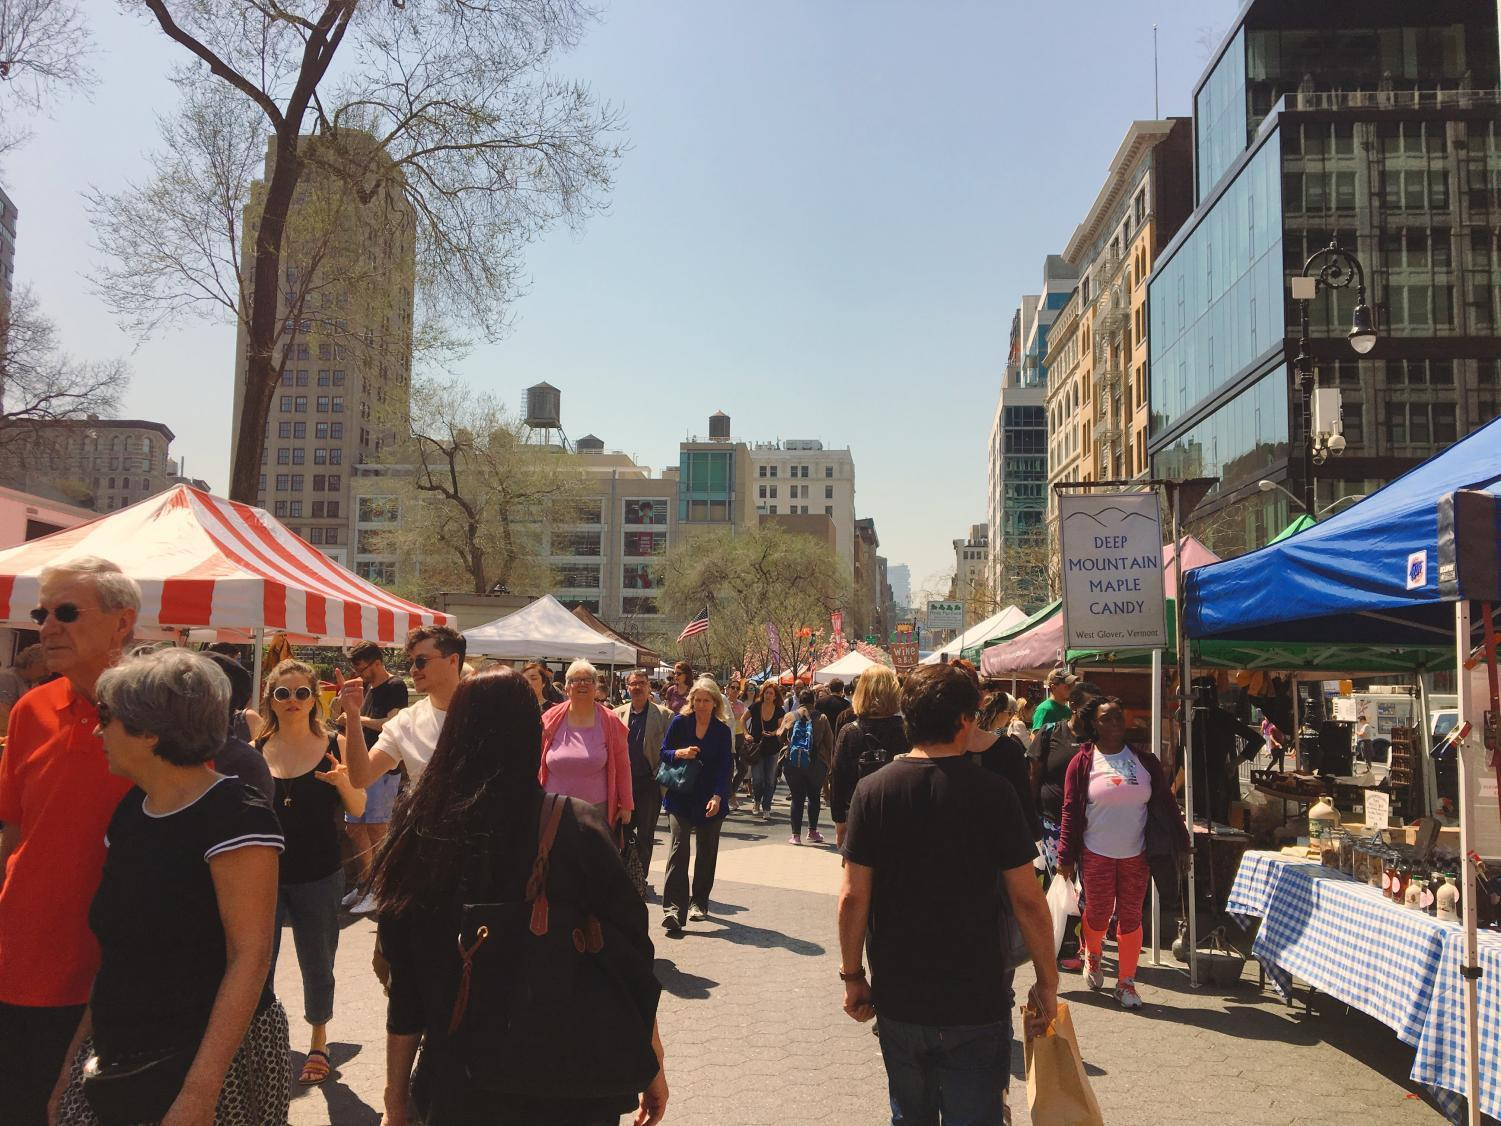 Eating local is possible at the Union Square Farmers' Market, open on Mondays, Wednesdays, Fridays and Saturdays from 8 a.m. to 6 p.m.